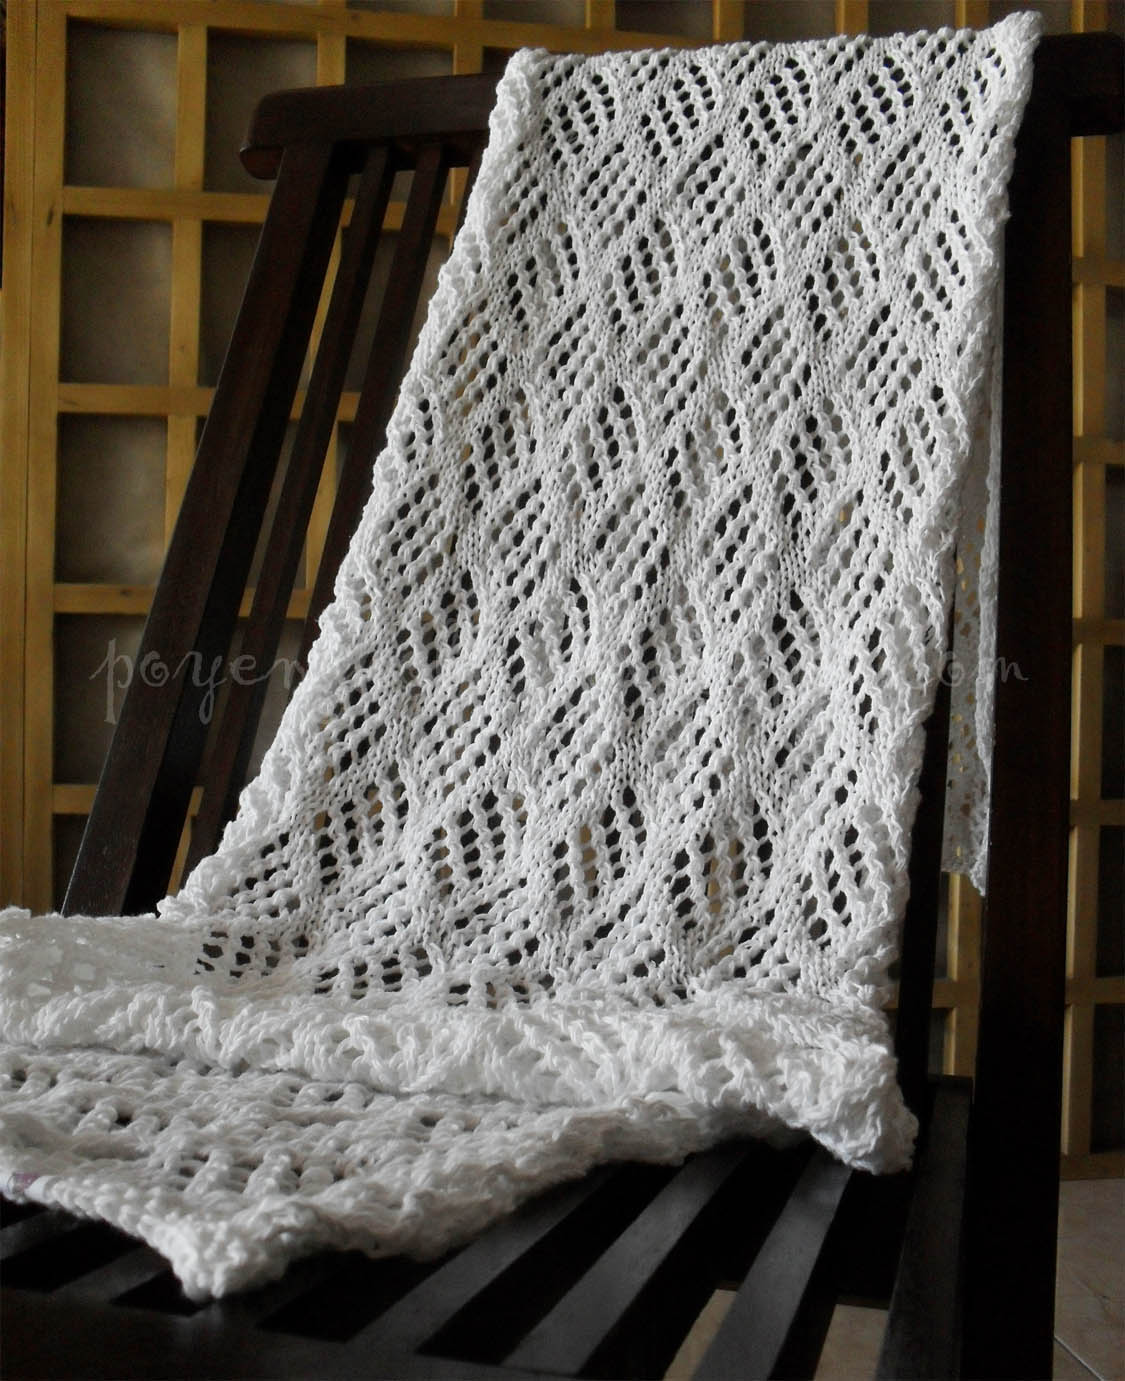 Free Knitted Lace Patterns : Ajeng Belajar Merajut: Rajut Free Knitting Pattern : Interlude Lace Wrap